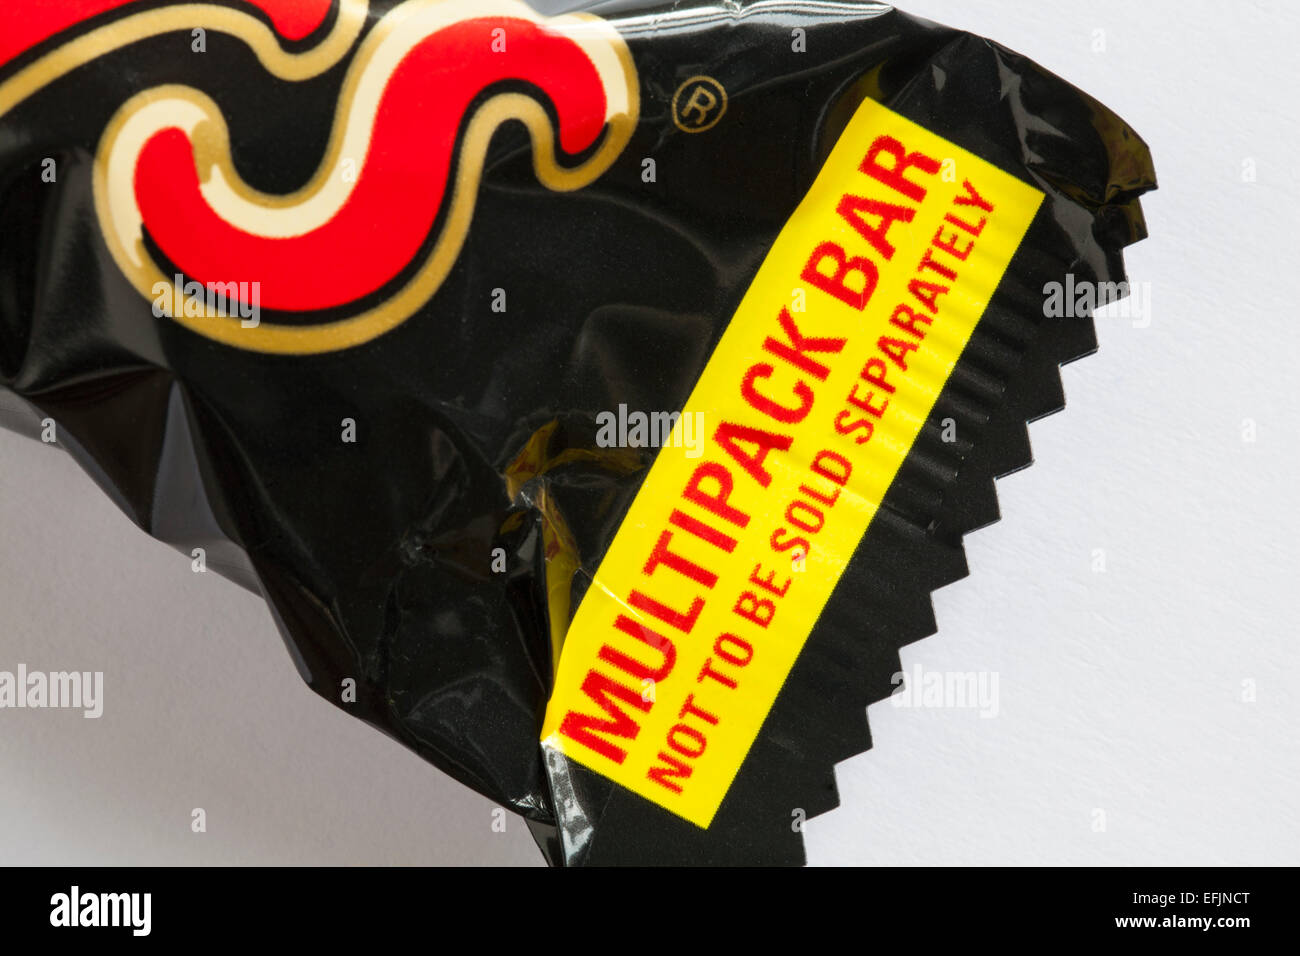 Multipack not to be sold separately details on Mars bar chocolate set on white background - Stock Image